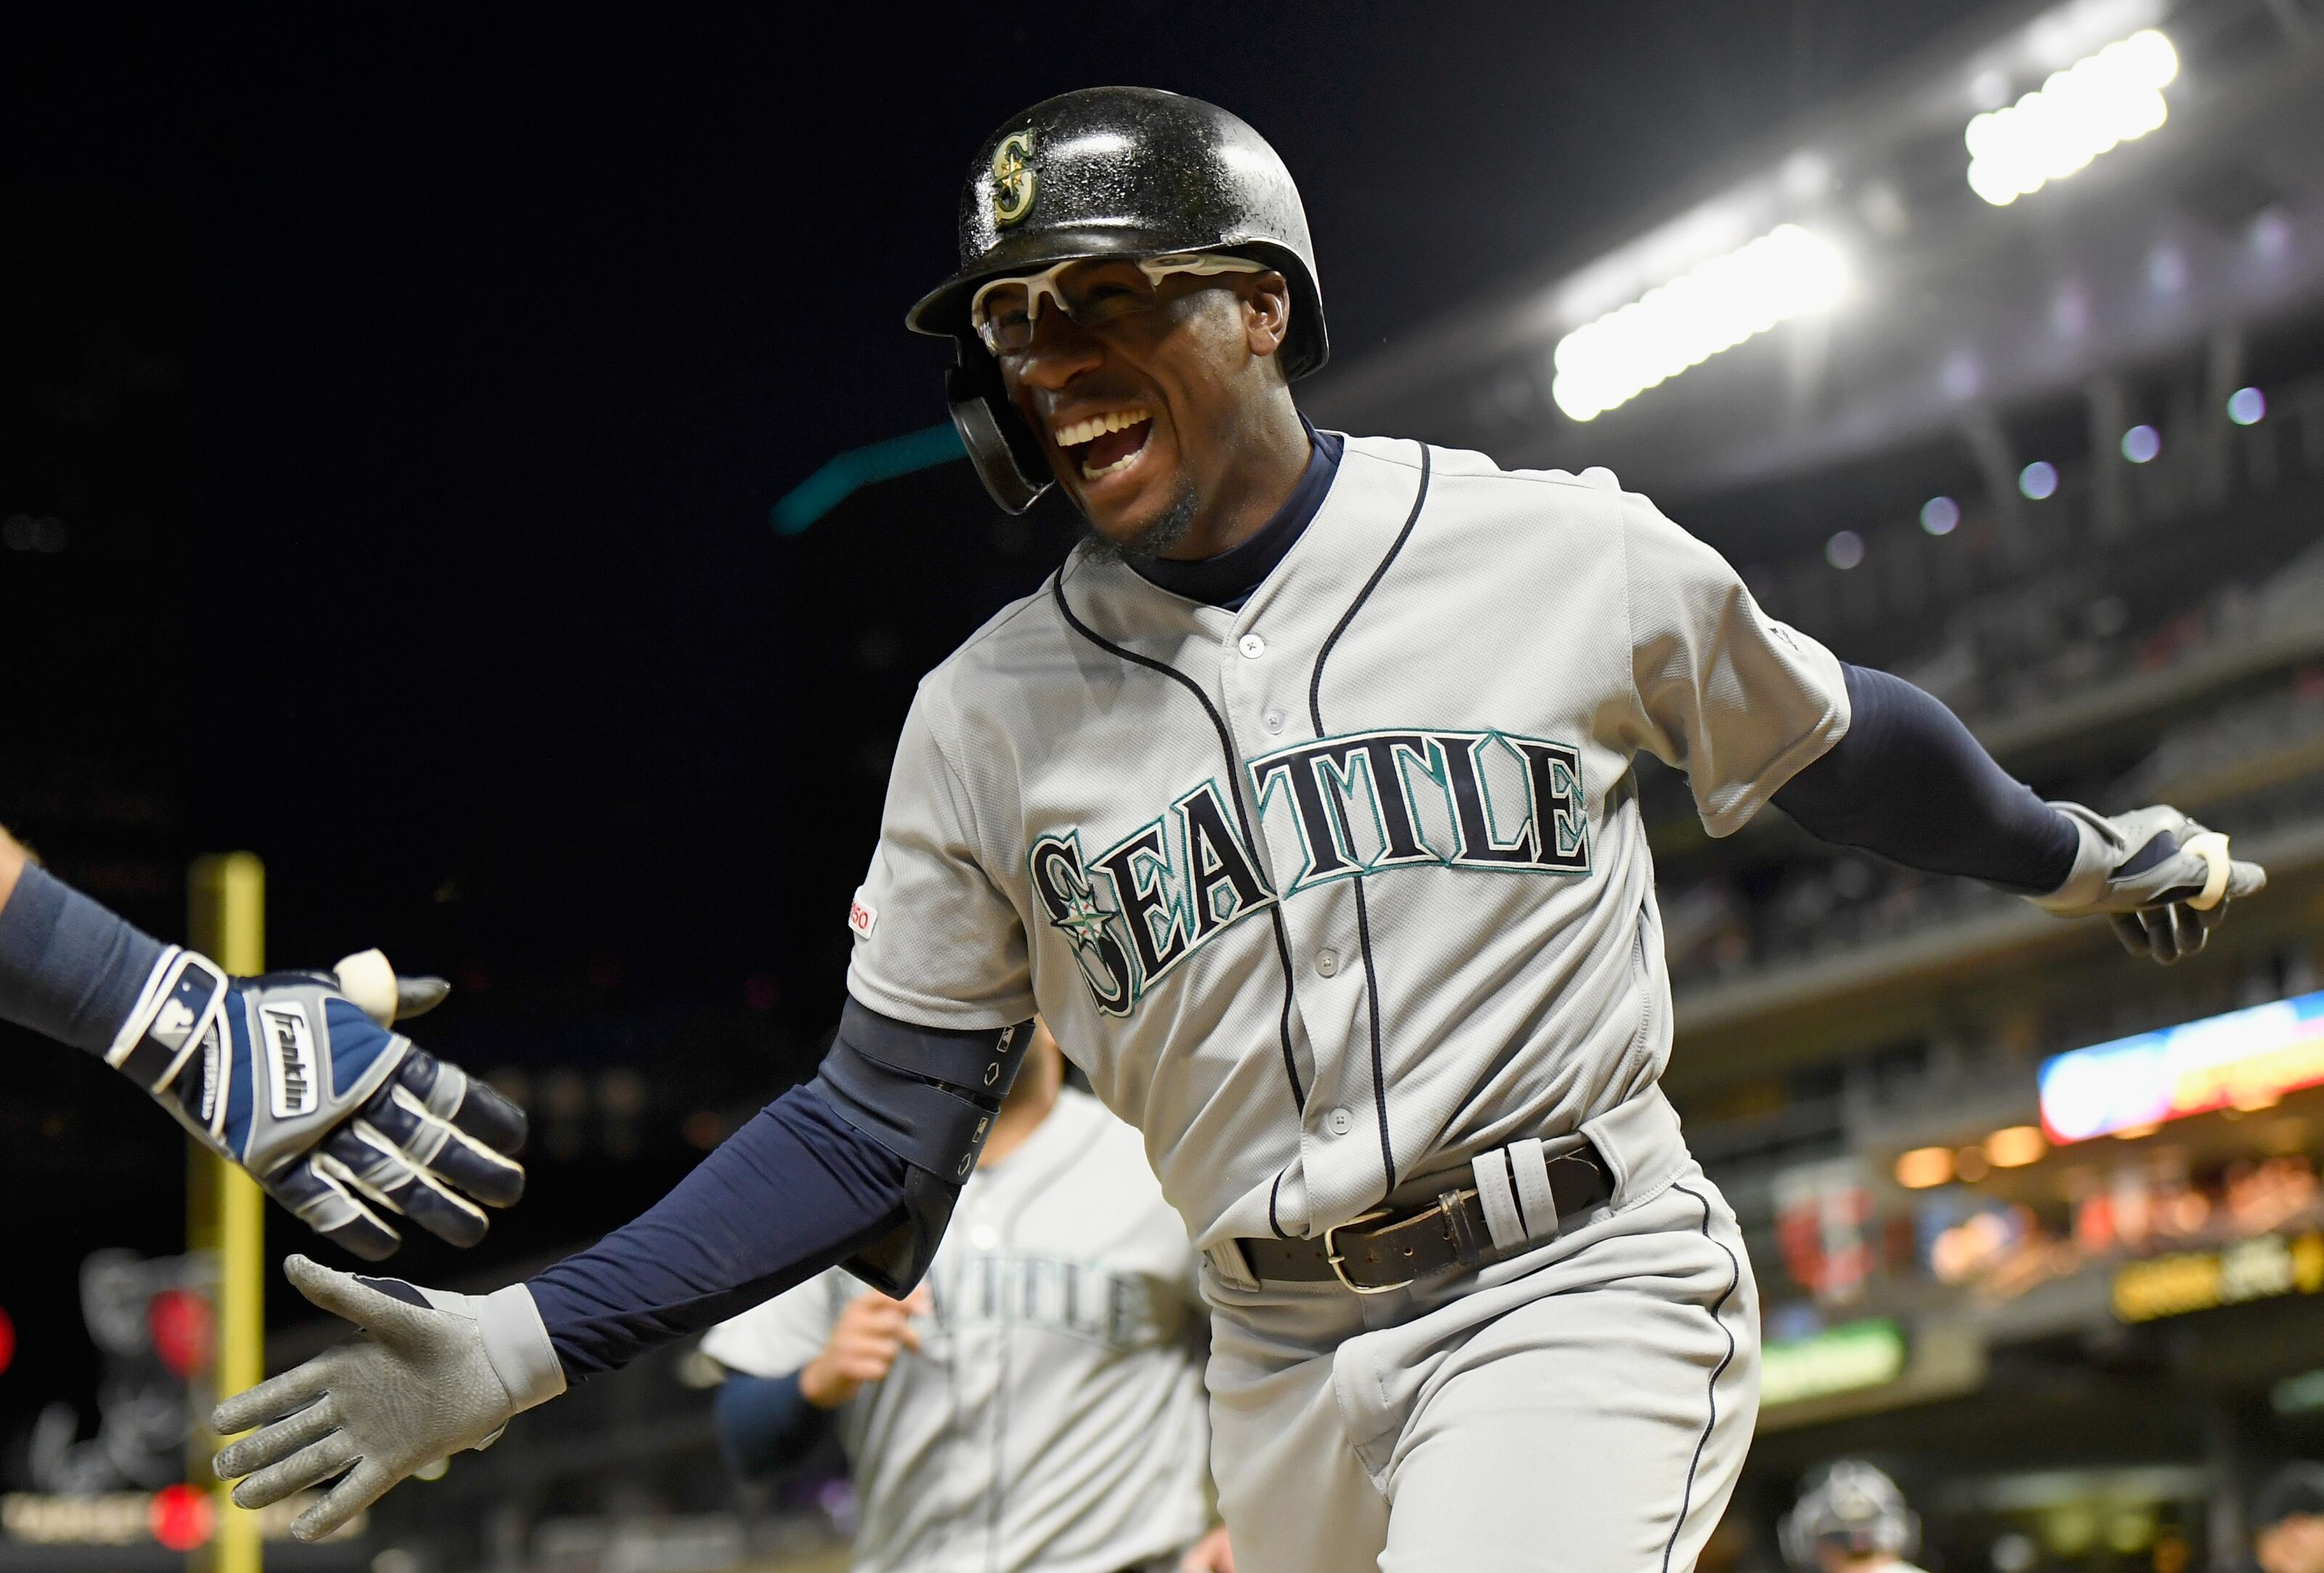 Mariners second baseman going forward in 2020